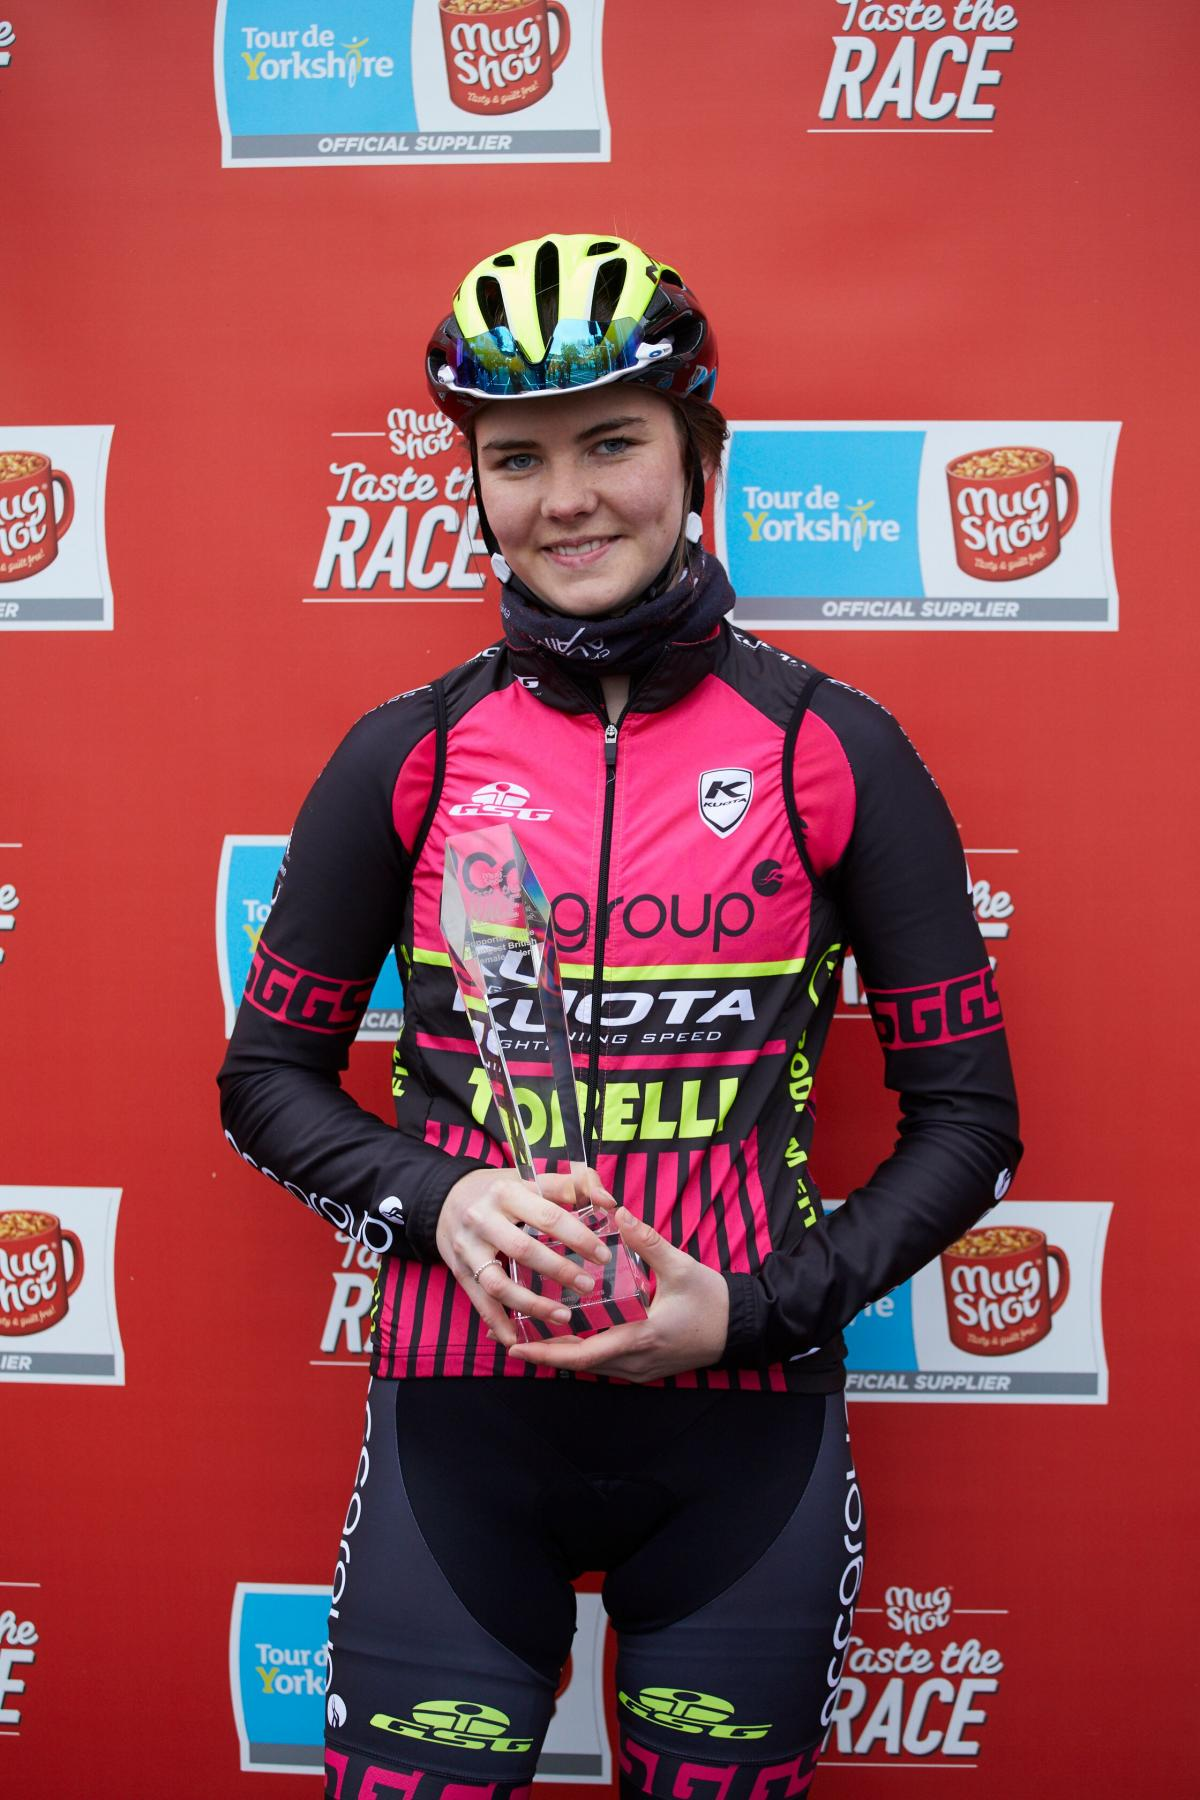 Gwenno, 17, pits her wits against the best in Tour de Yorkshire